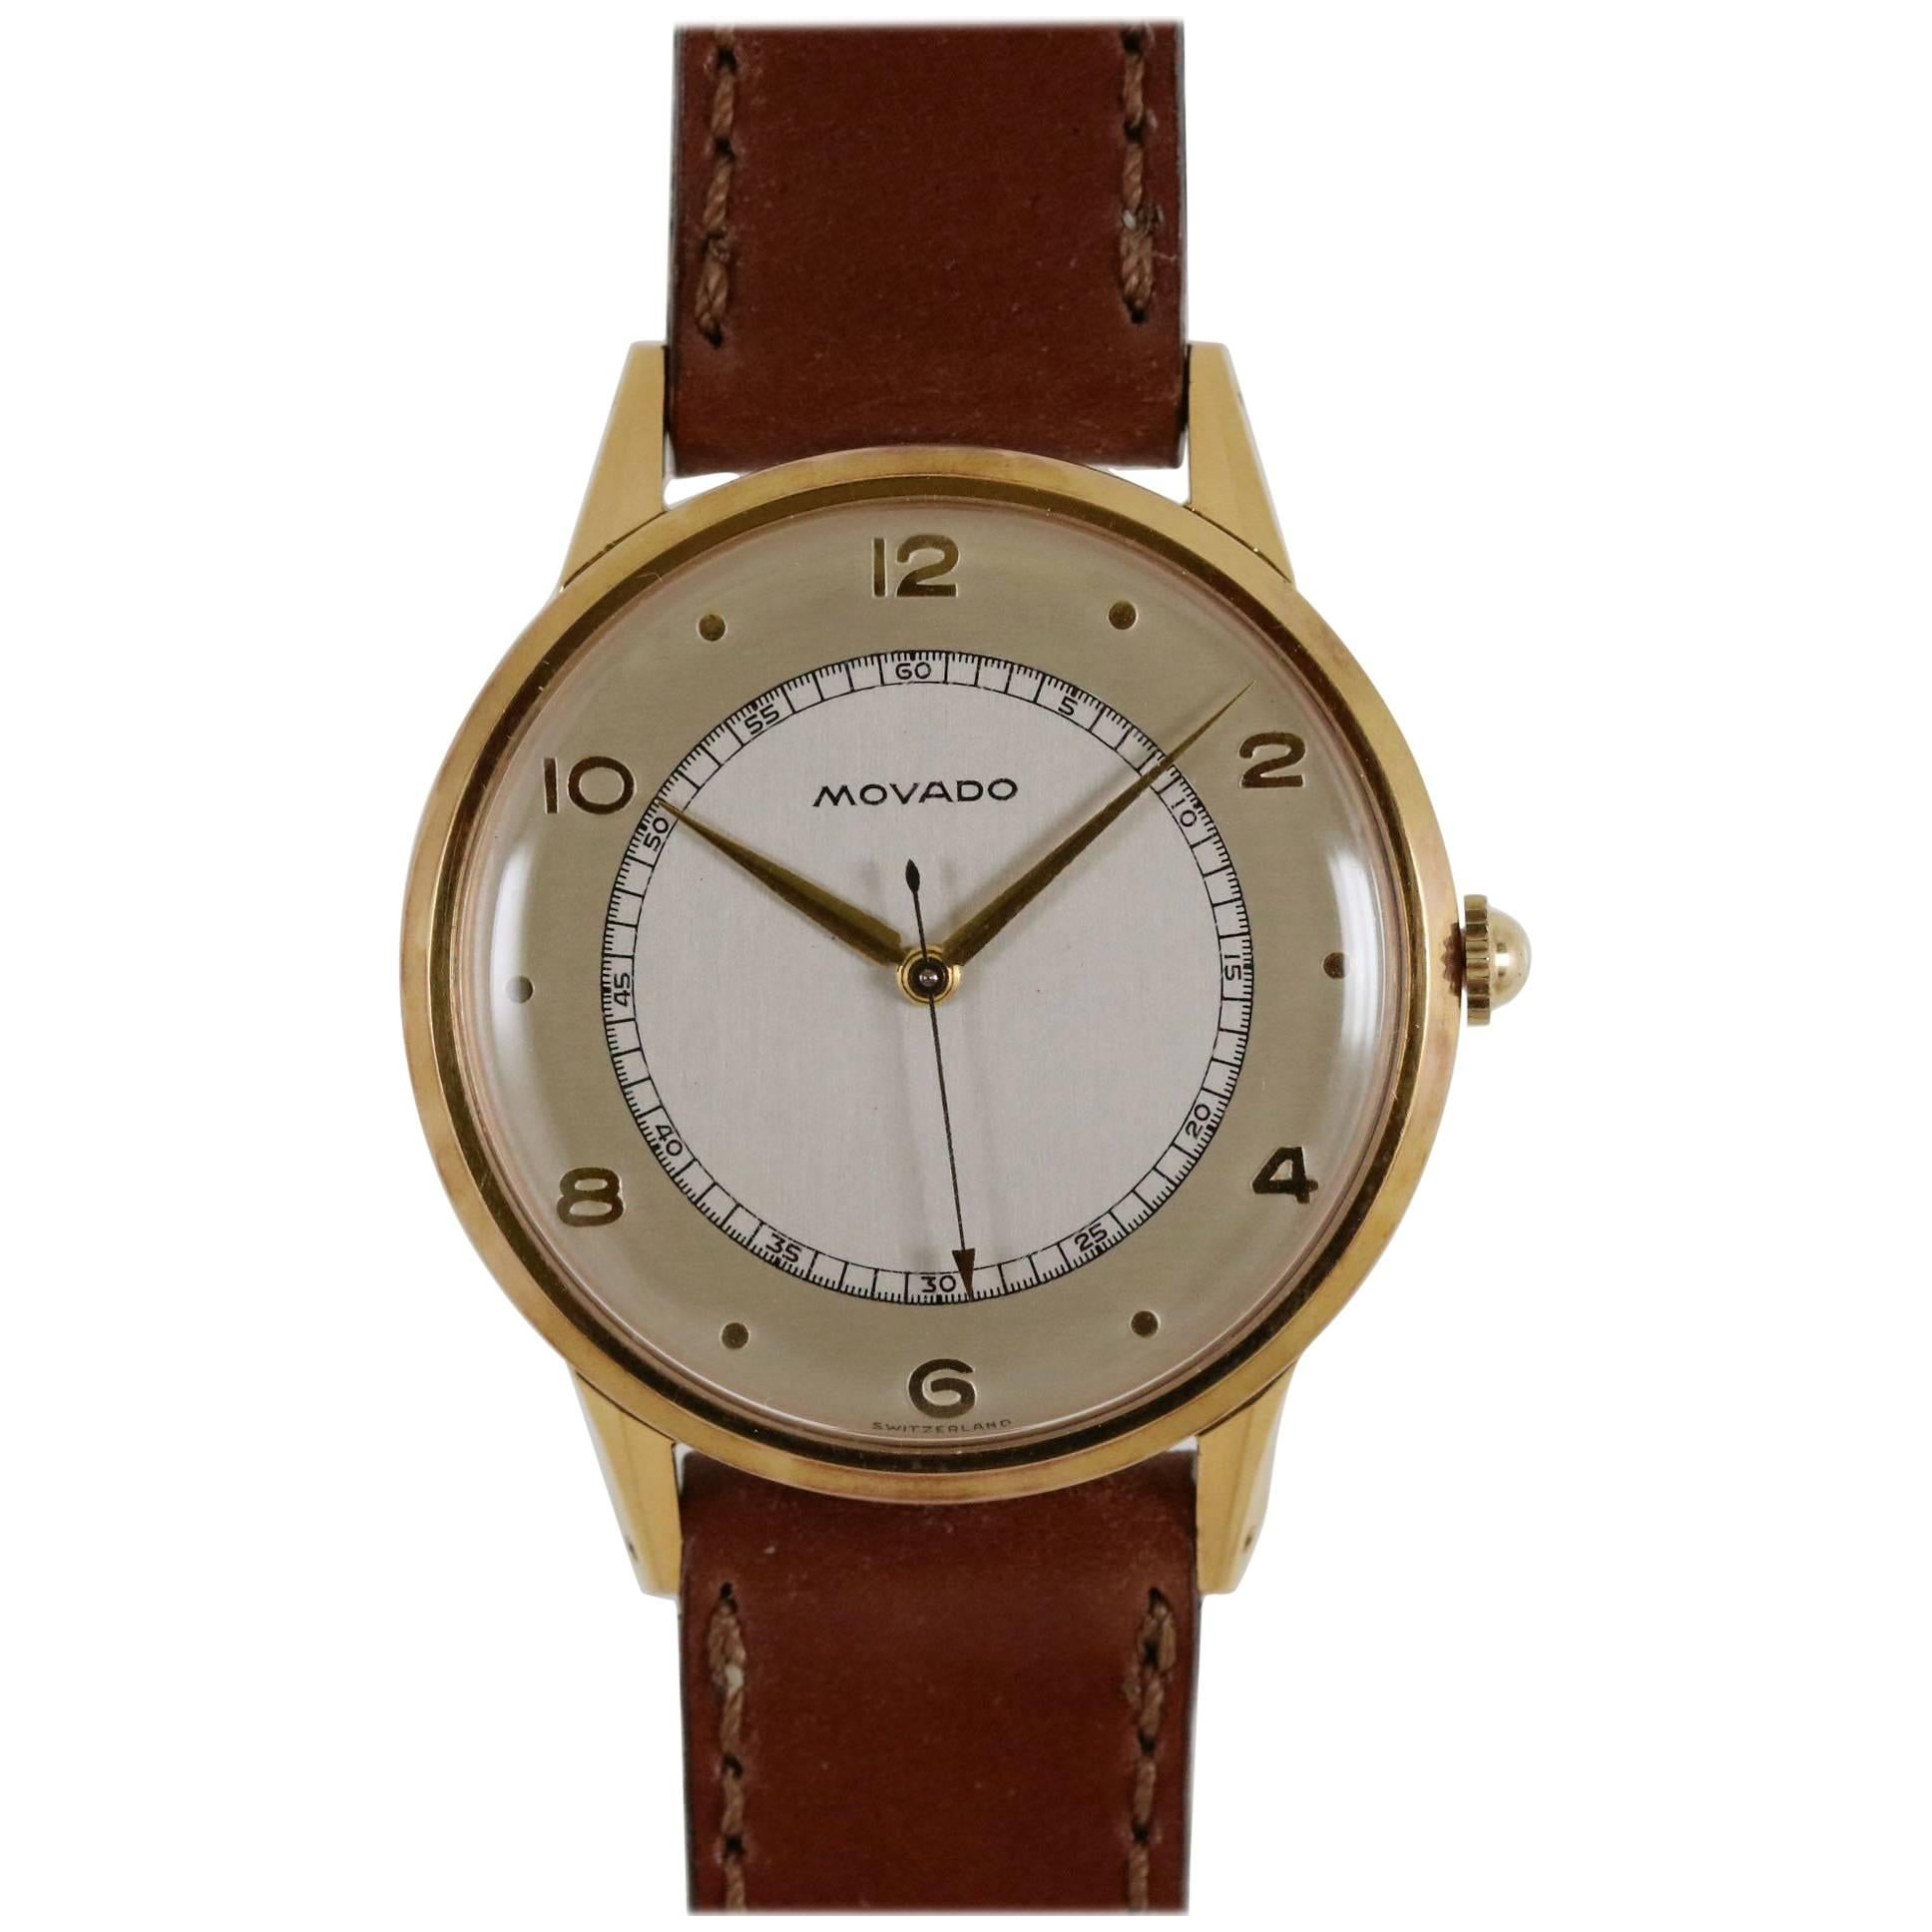 Movado Yellow Gold Plated Stainless Steel Manual Wind Dress Wristwatch